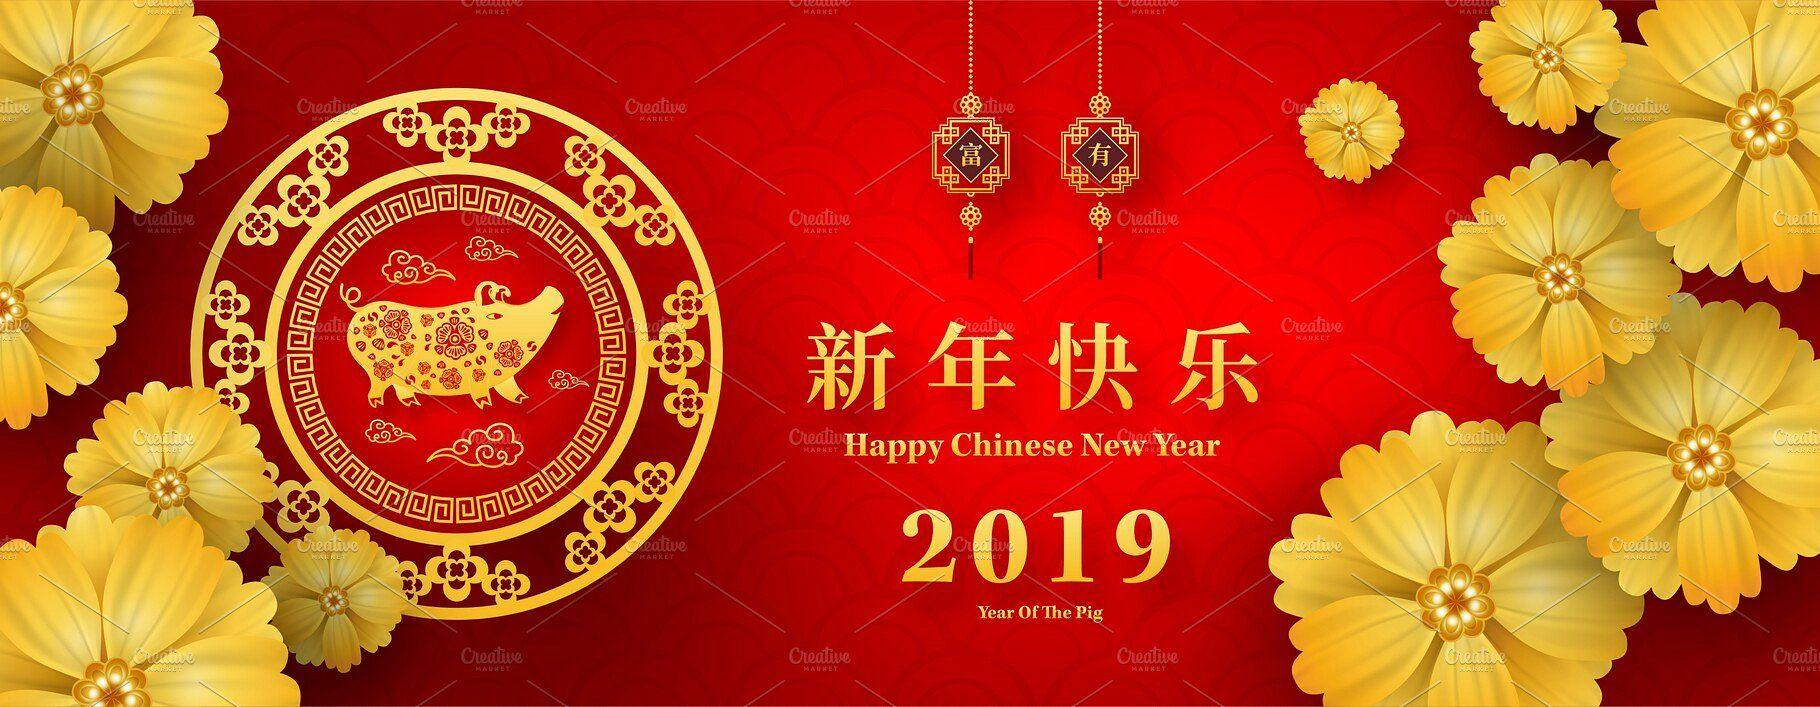 Happy Chinese New Year 2019 for Friends, Family, Relatives, Husband